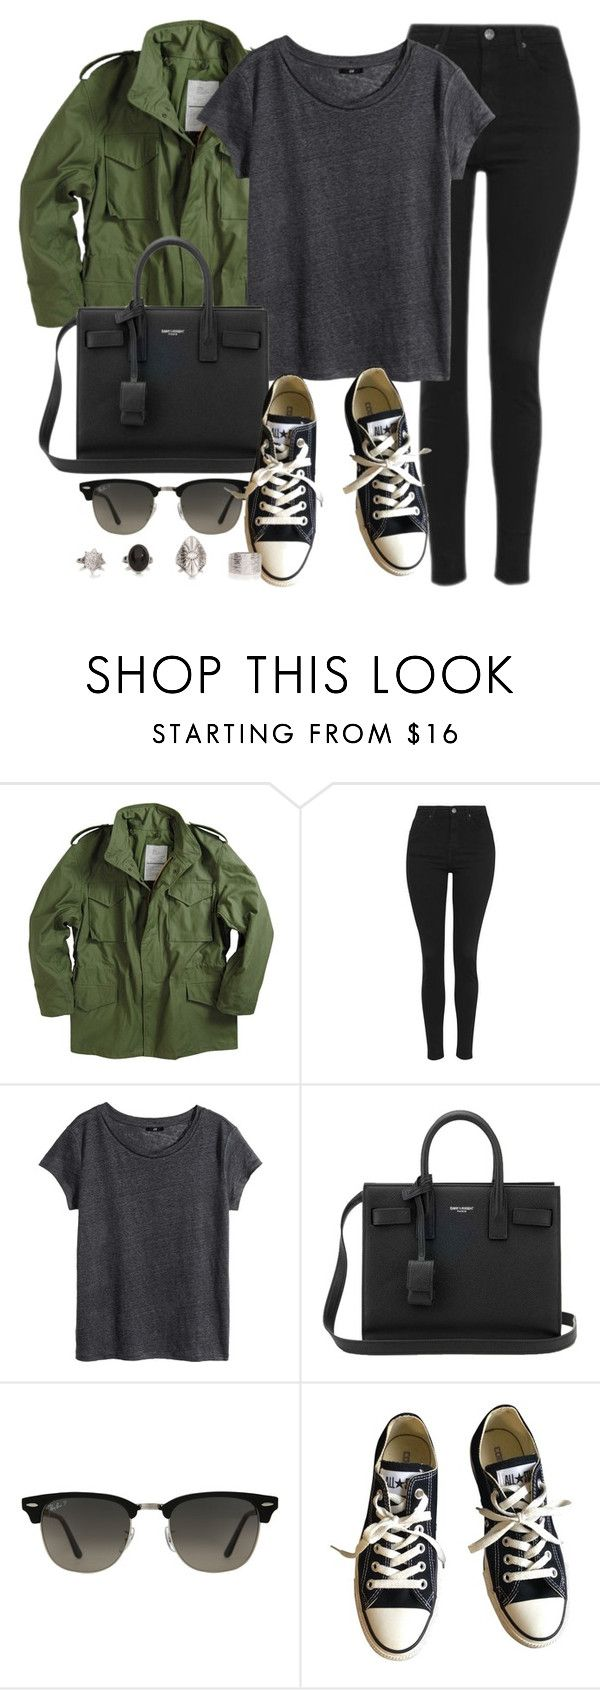 """""""Style #11334"""" by vany-alvarado ❤ liked on Polyvore featuring Topshop, H&M, Yves Saint Laurent, Ray-Ban and Converse"""